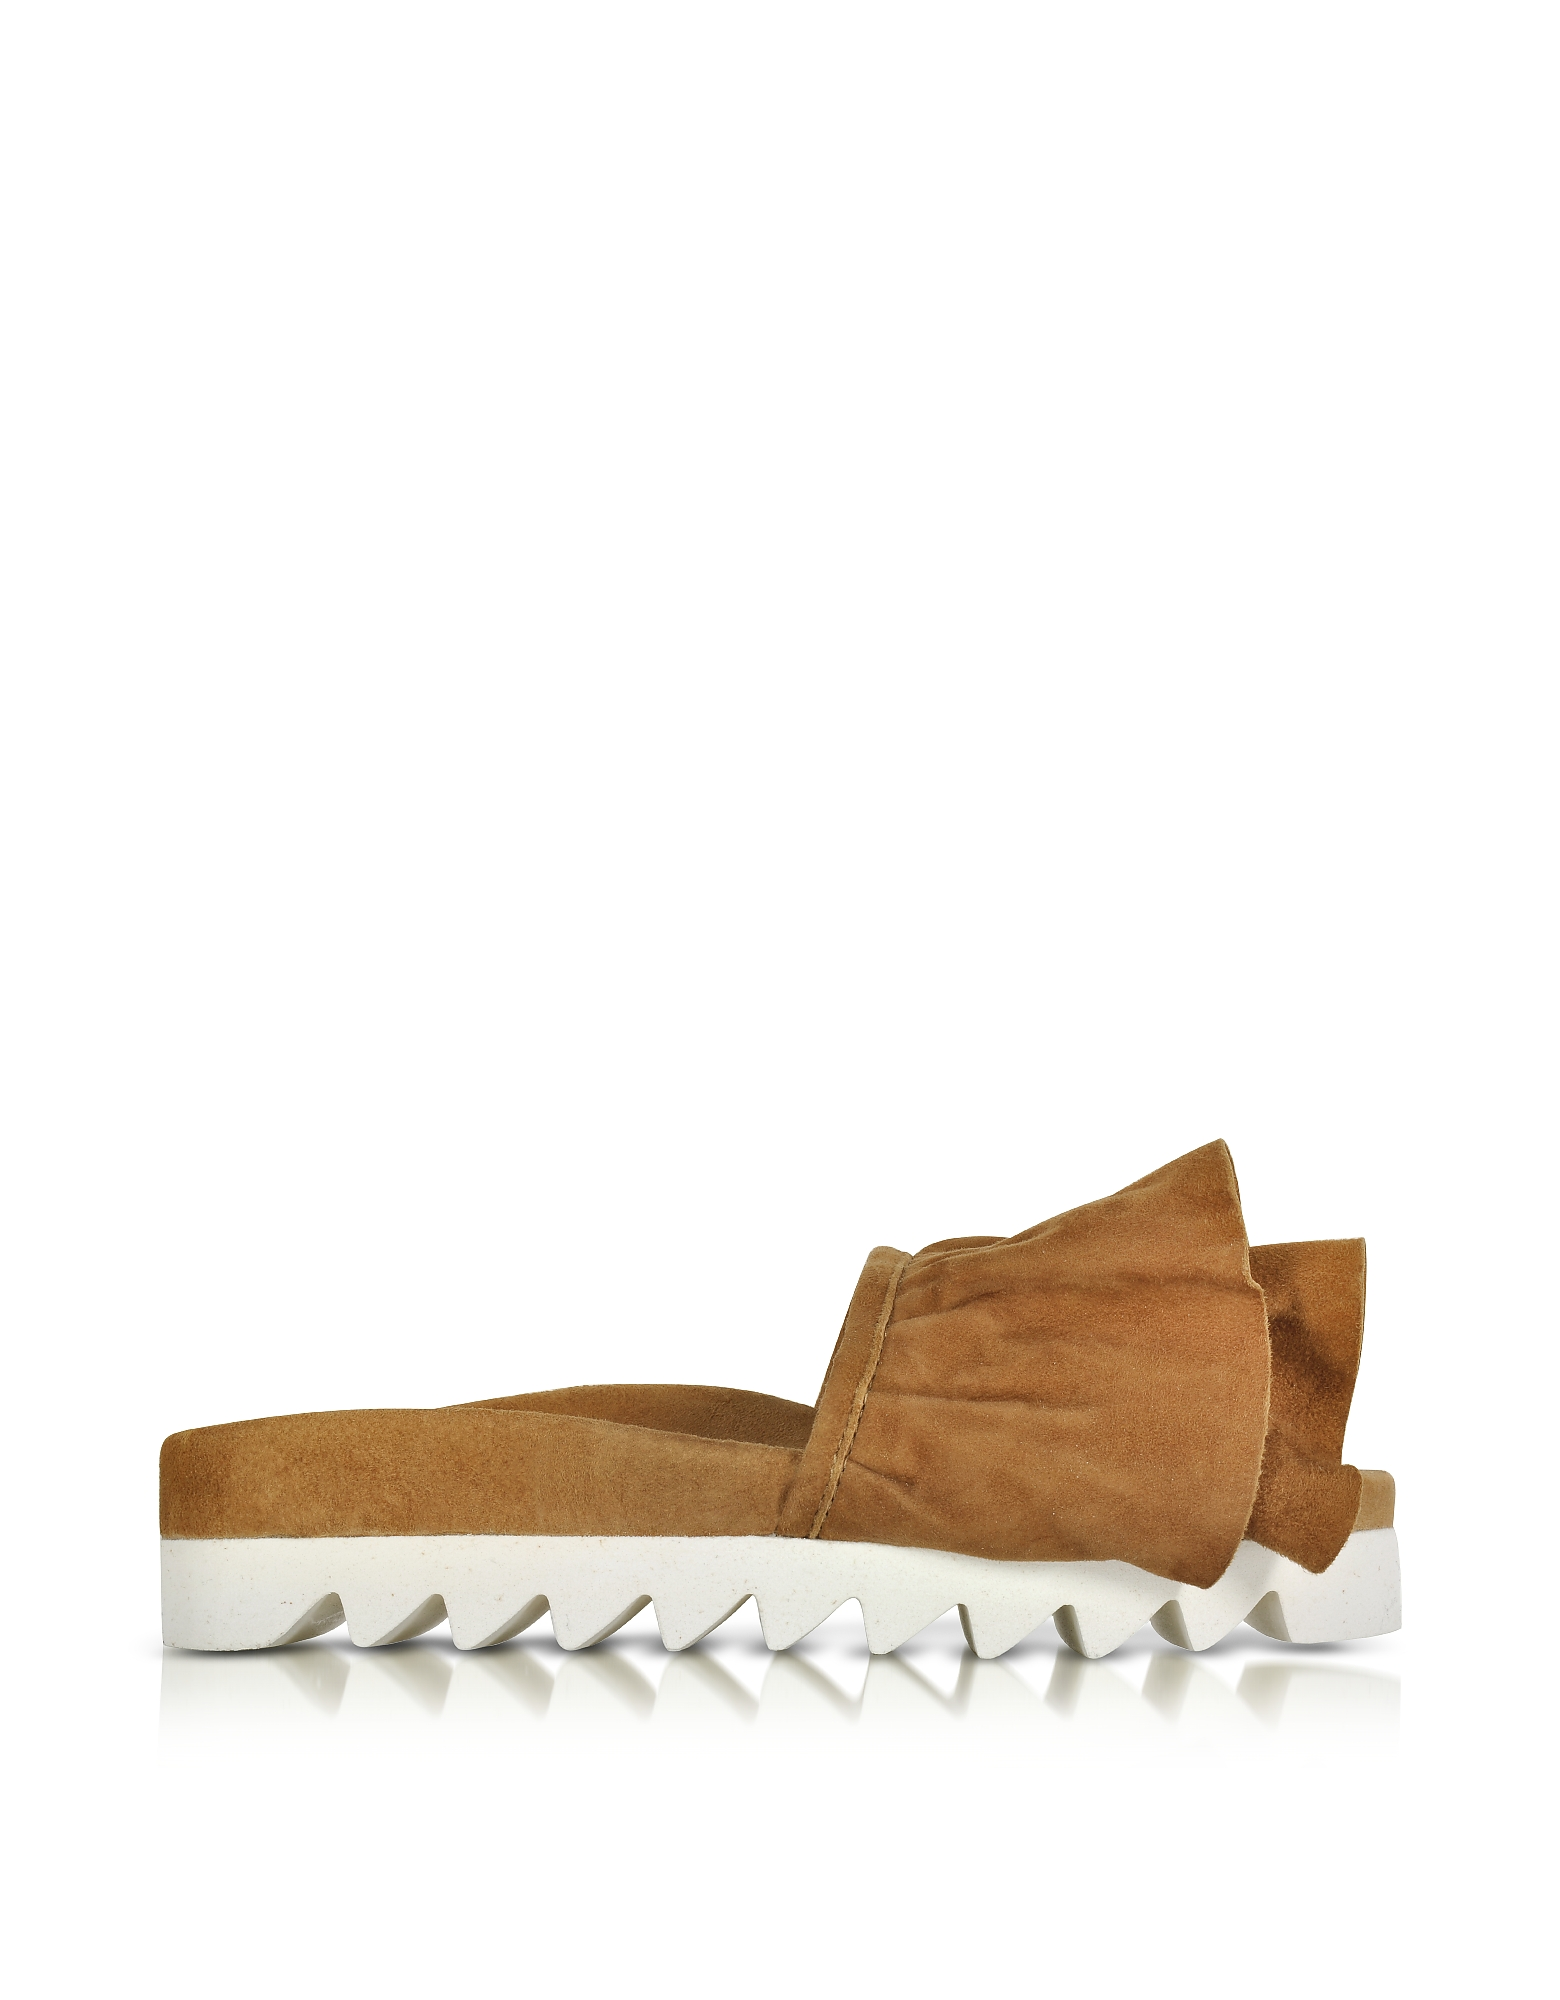 Joshua Sanders Shoes, Tabac Ruches Suede Slide